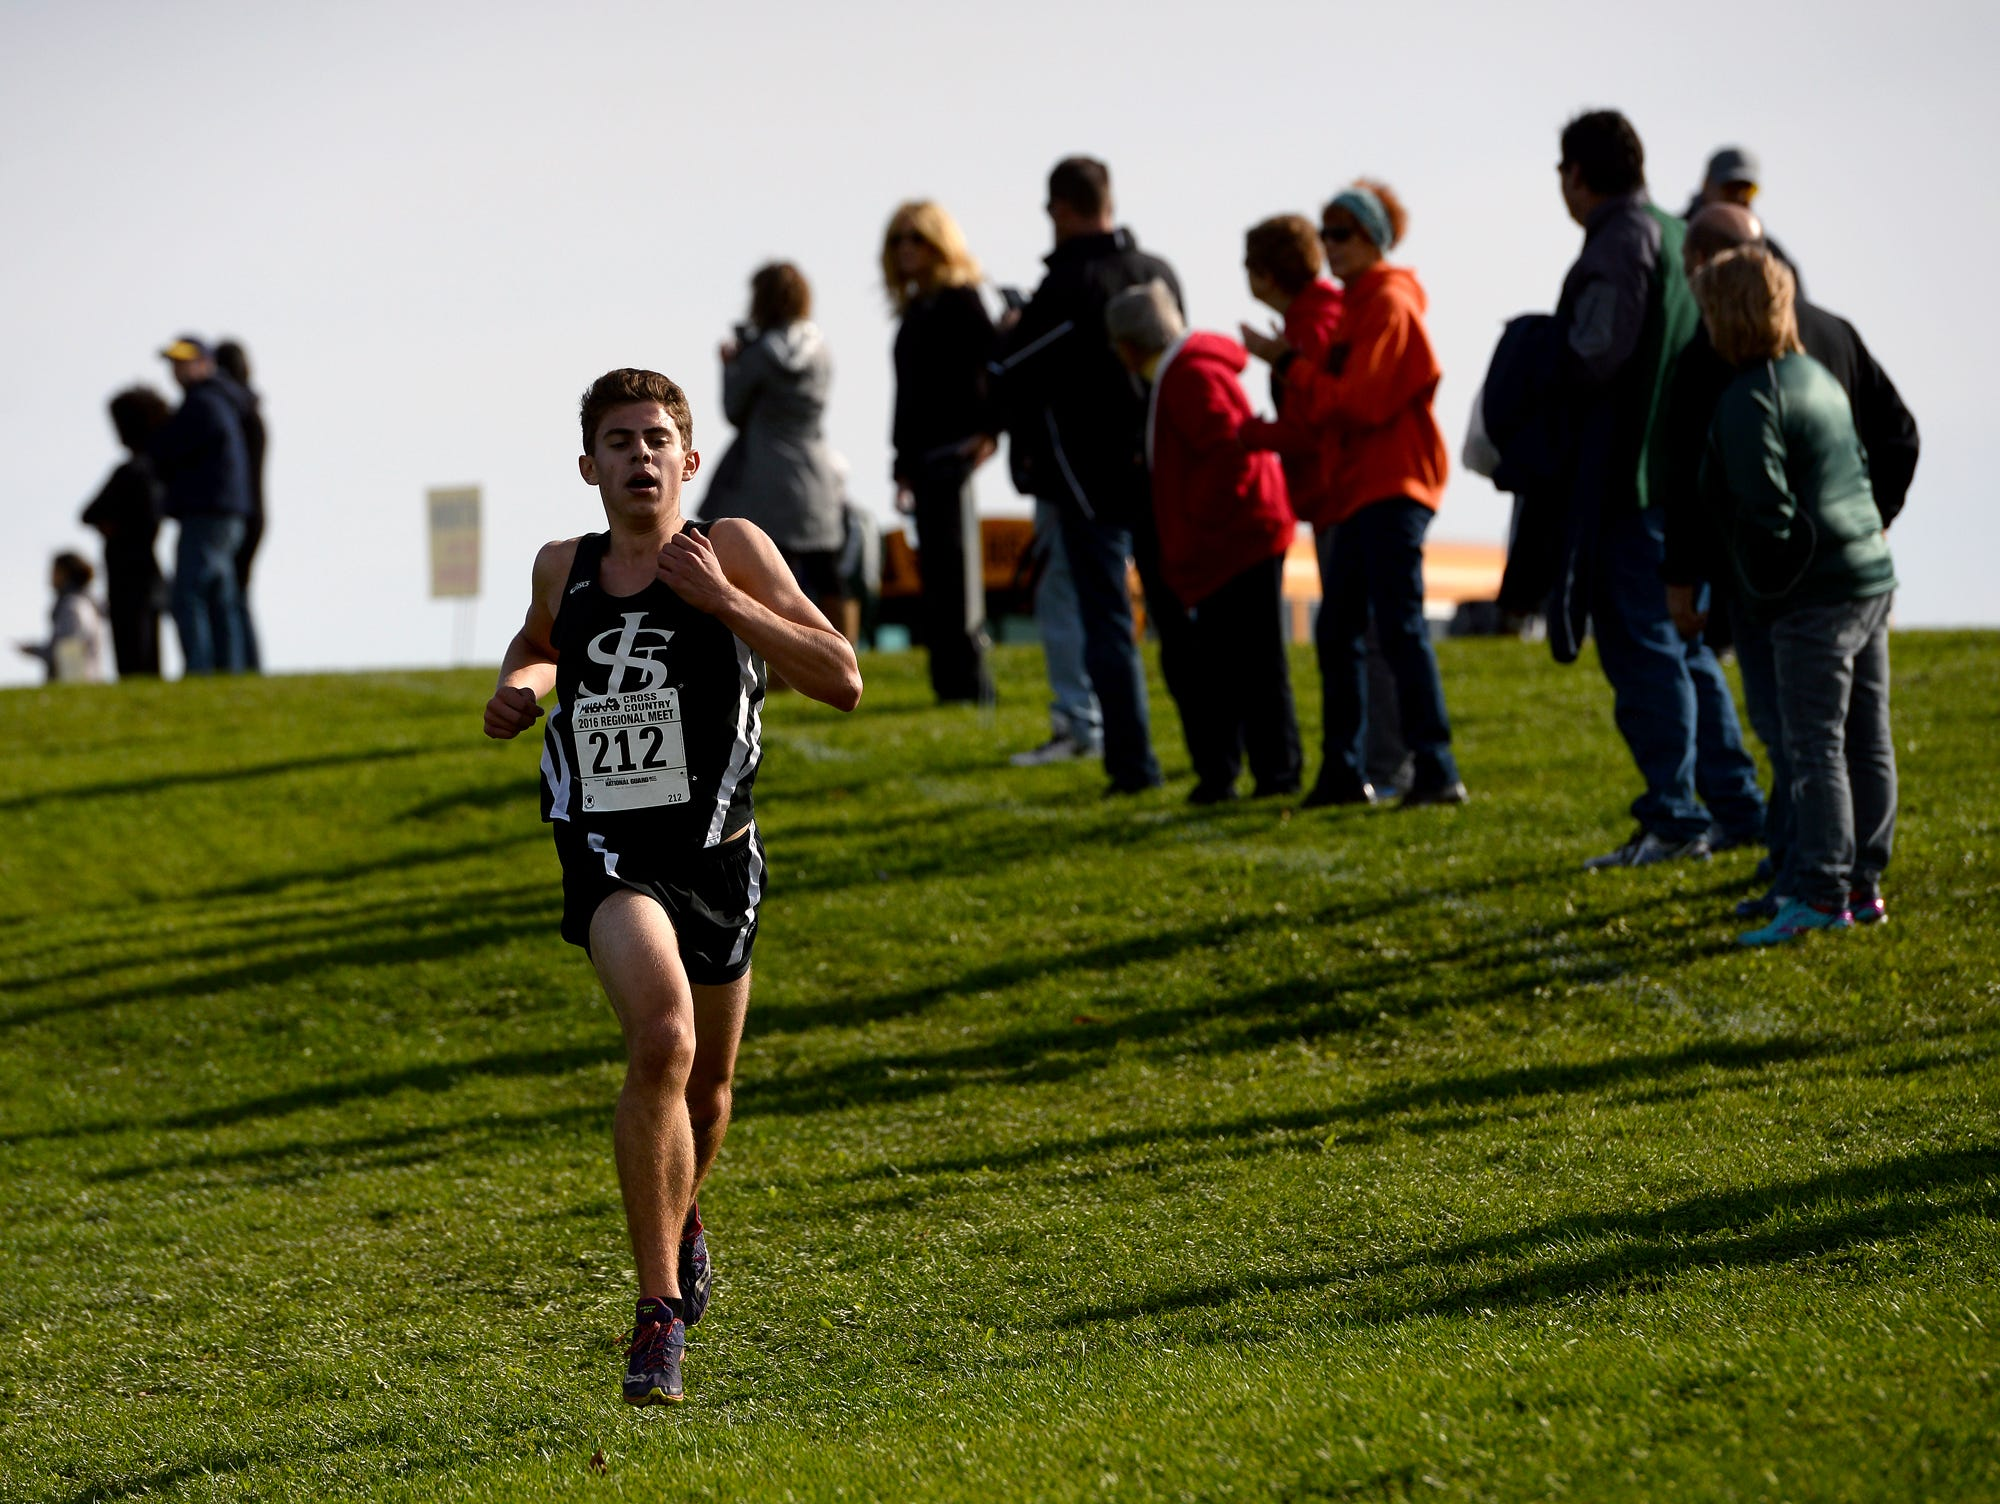 St. Johns' Dillan Haviland leads the pack down the hill in the Division 2 regional cross country meet at Uncle John's Cider Mill Friday, October 28, 2016, in St. Johns.